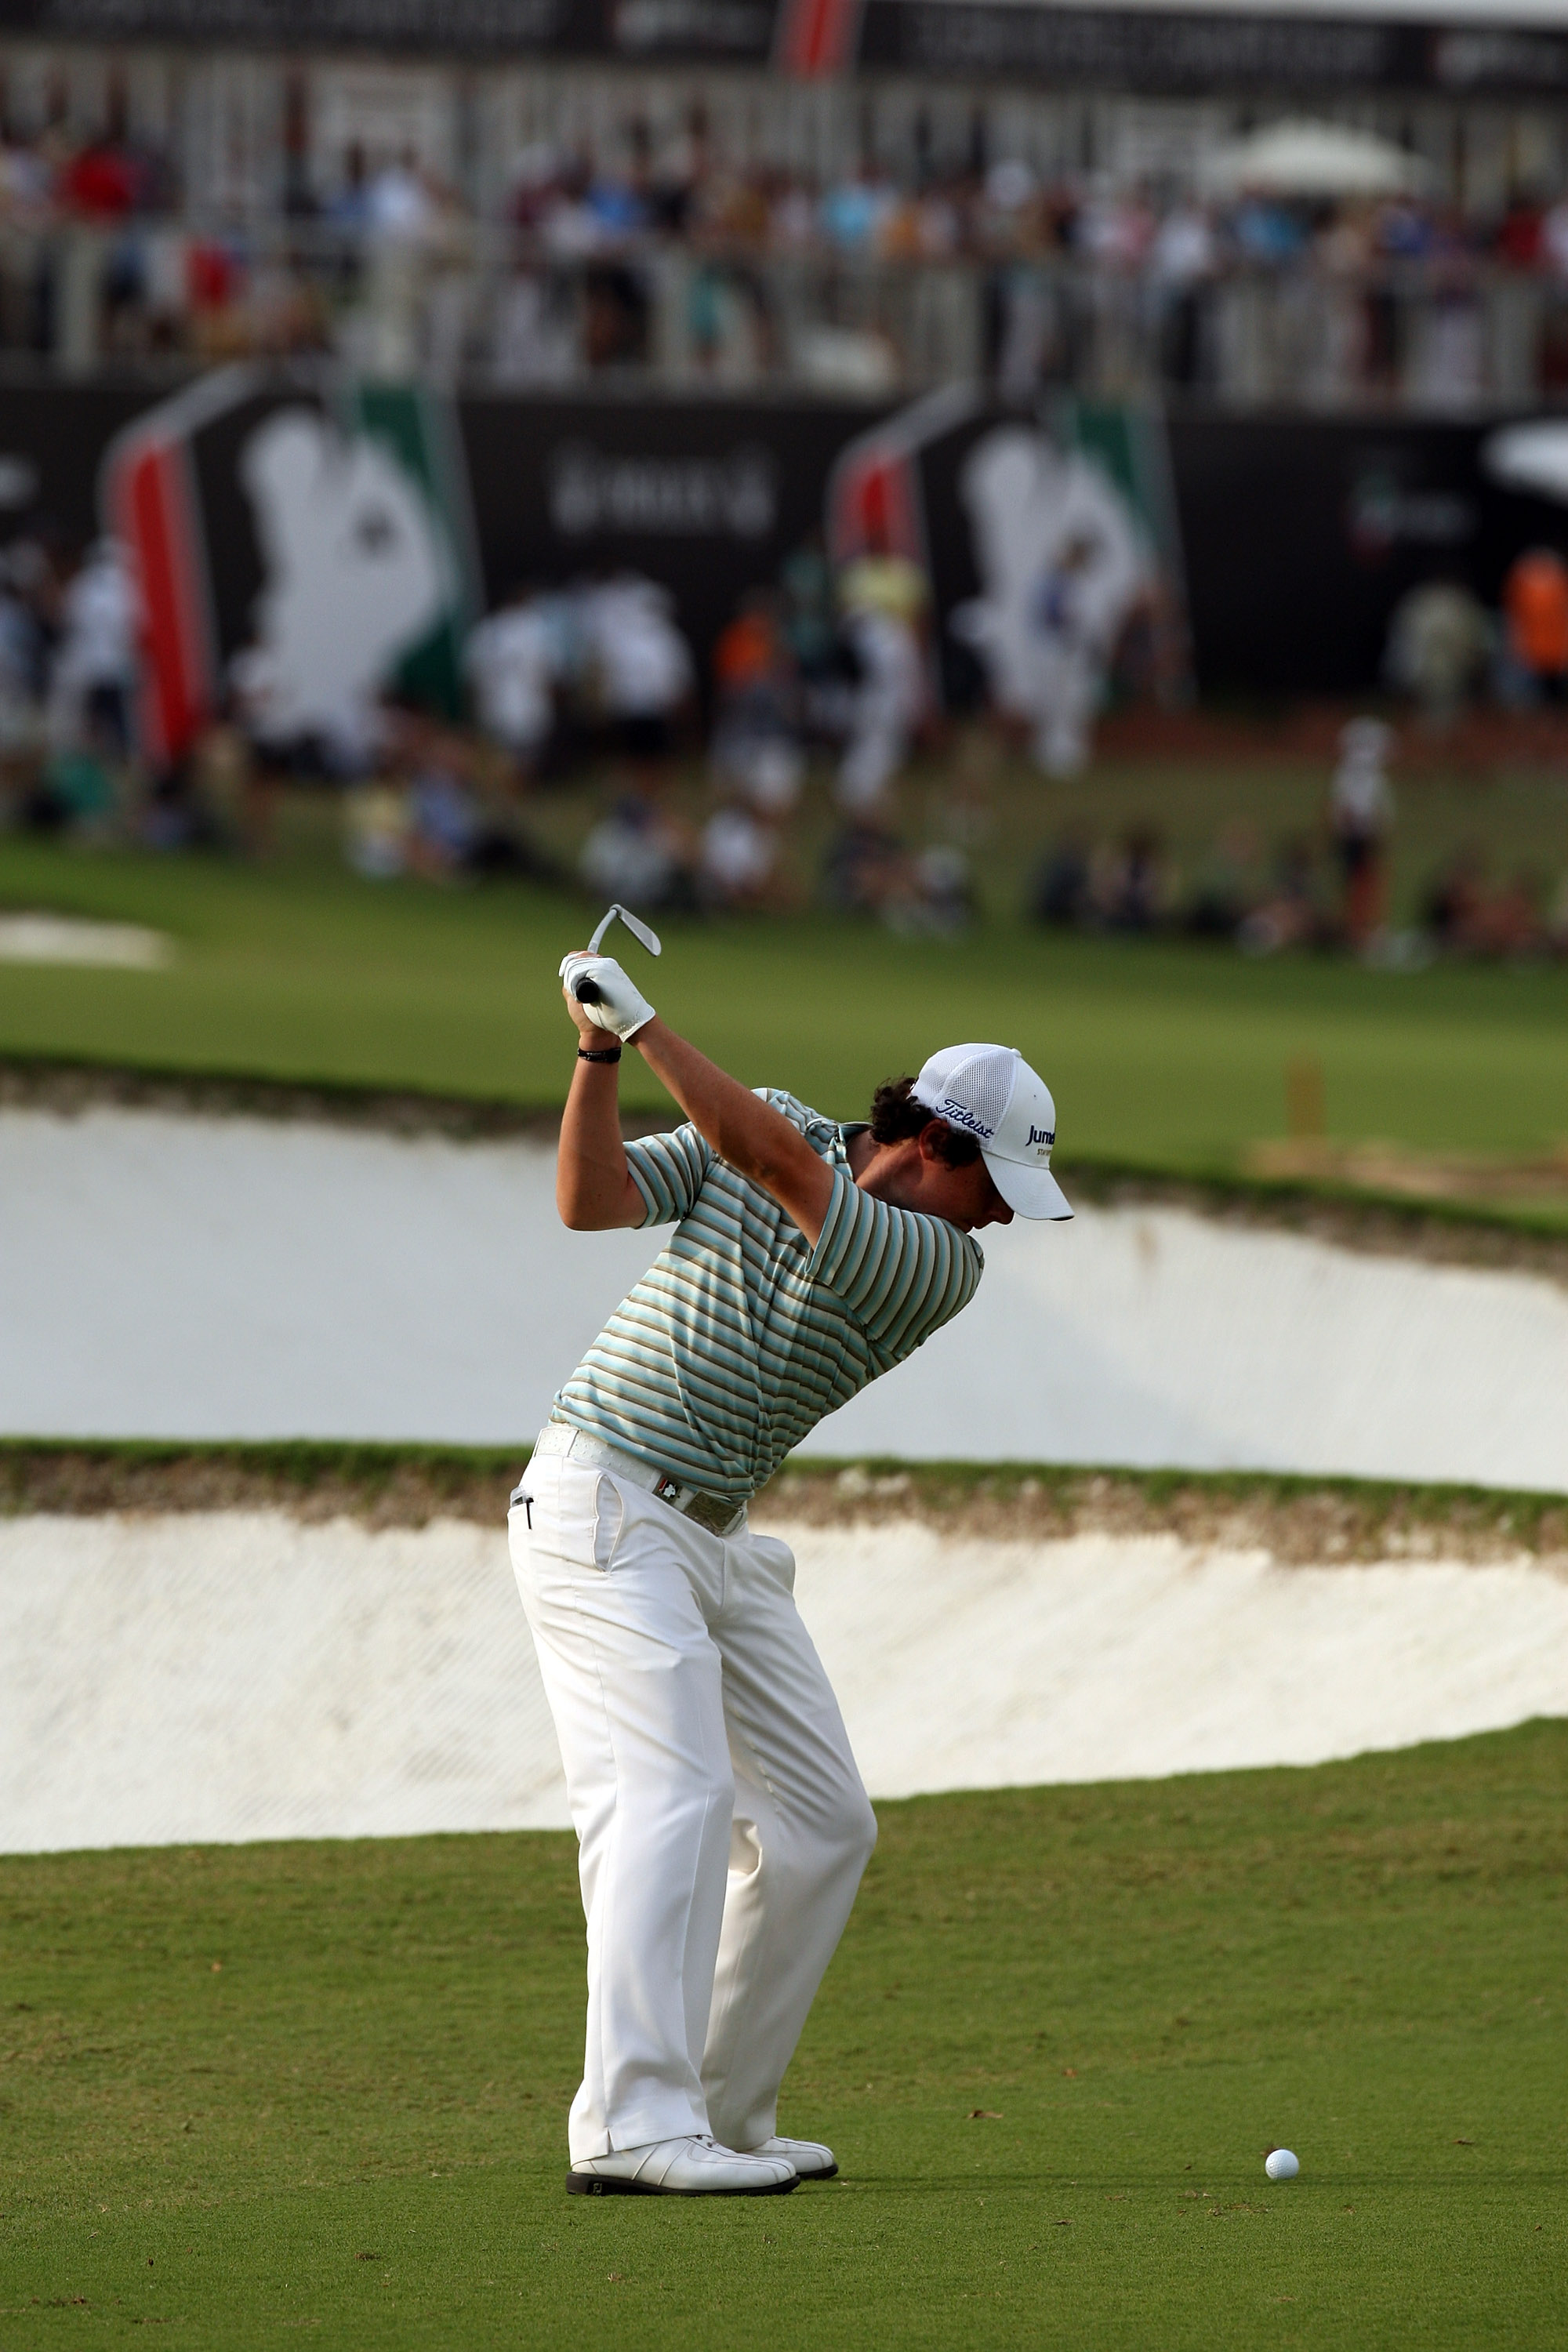 Rory McIlroy plays his second shot at the 18th hole during the final round of the Dubai World Championship.